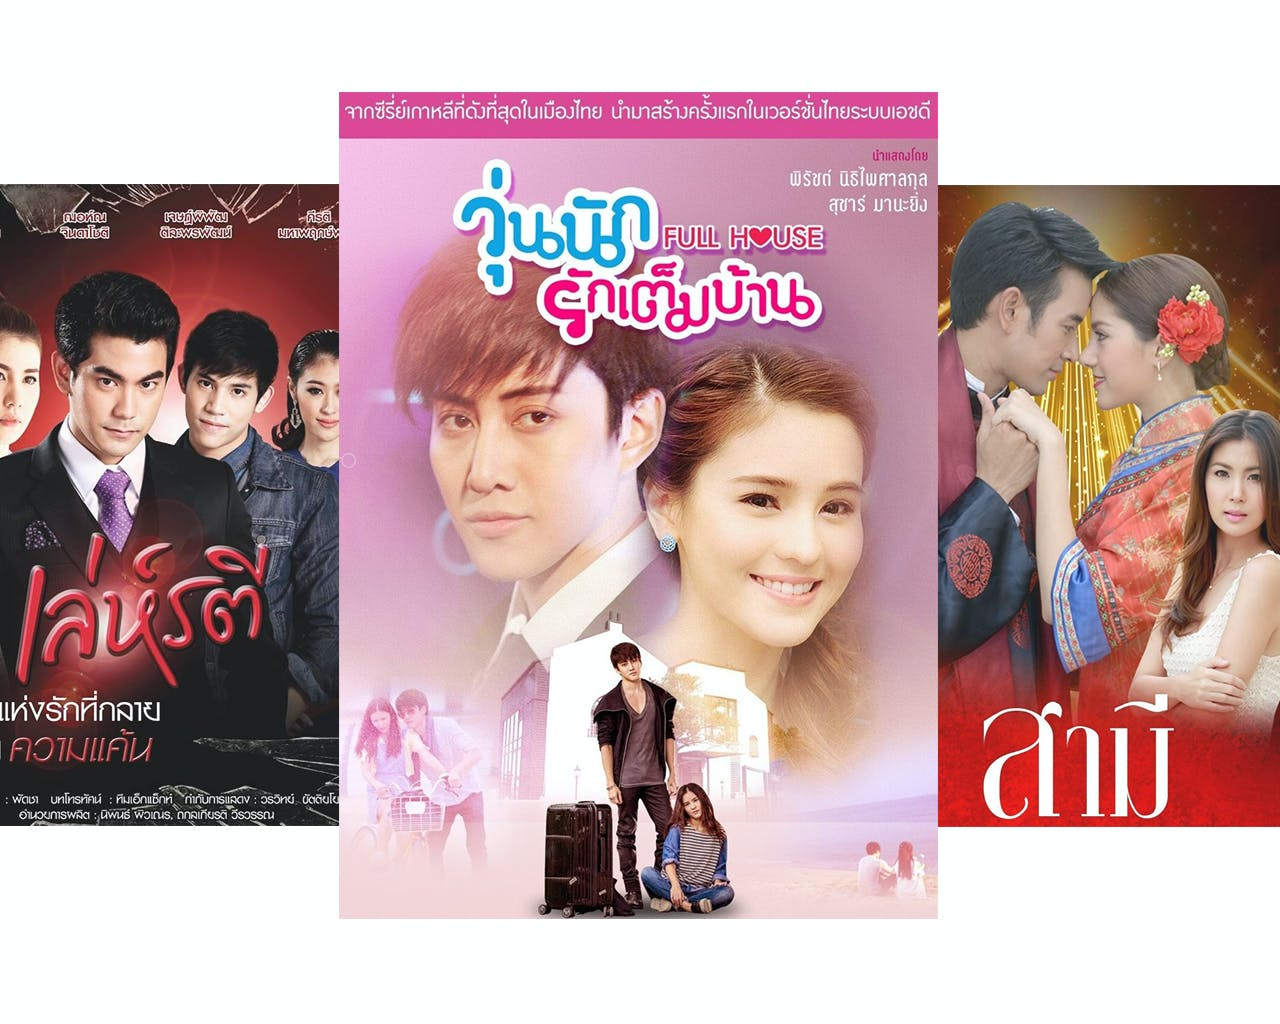 Give Thai Dramas A Try! 7 Series About Marriage And Relationships To Add To Your Watch List